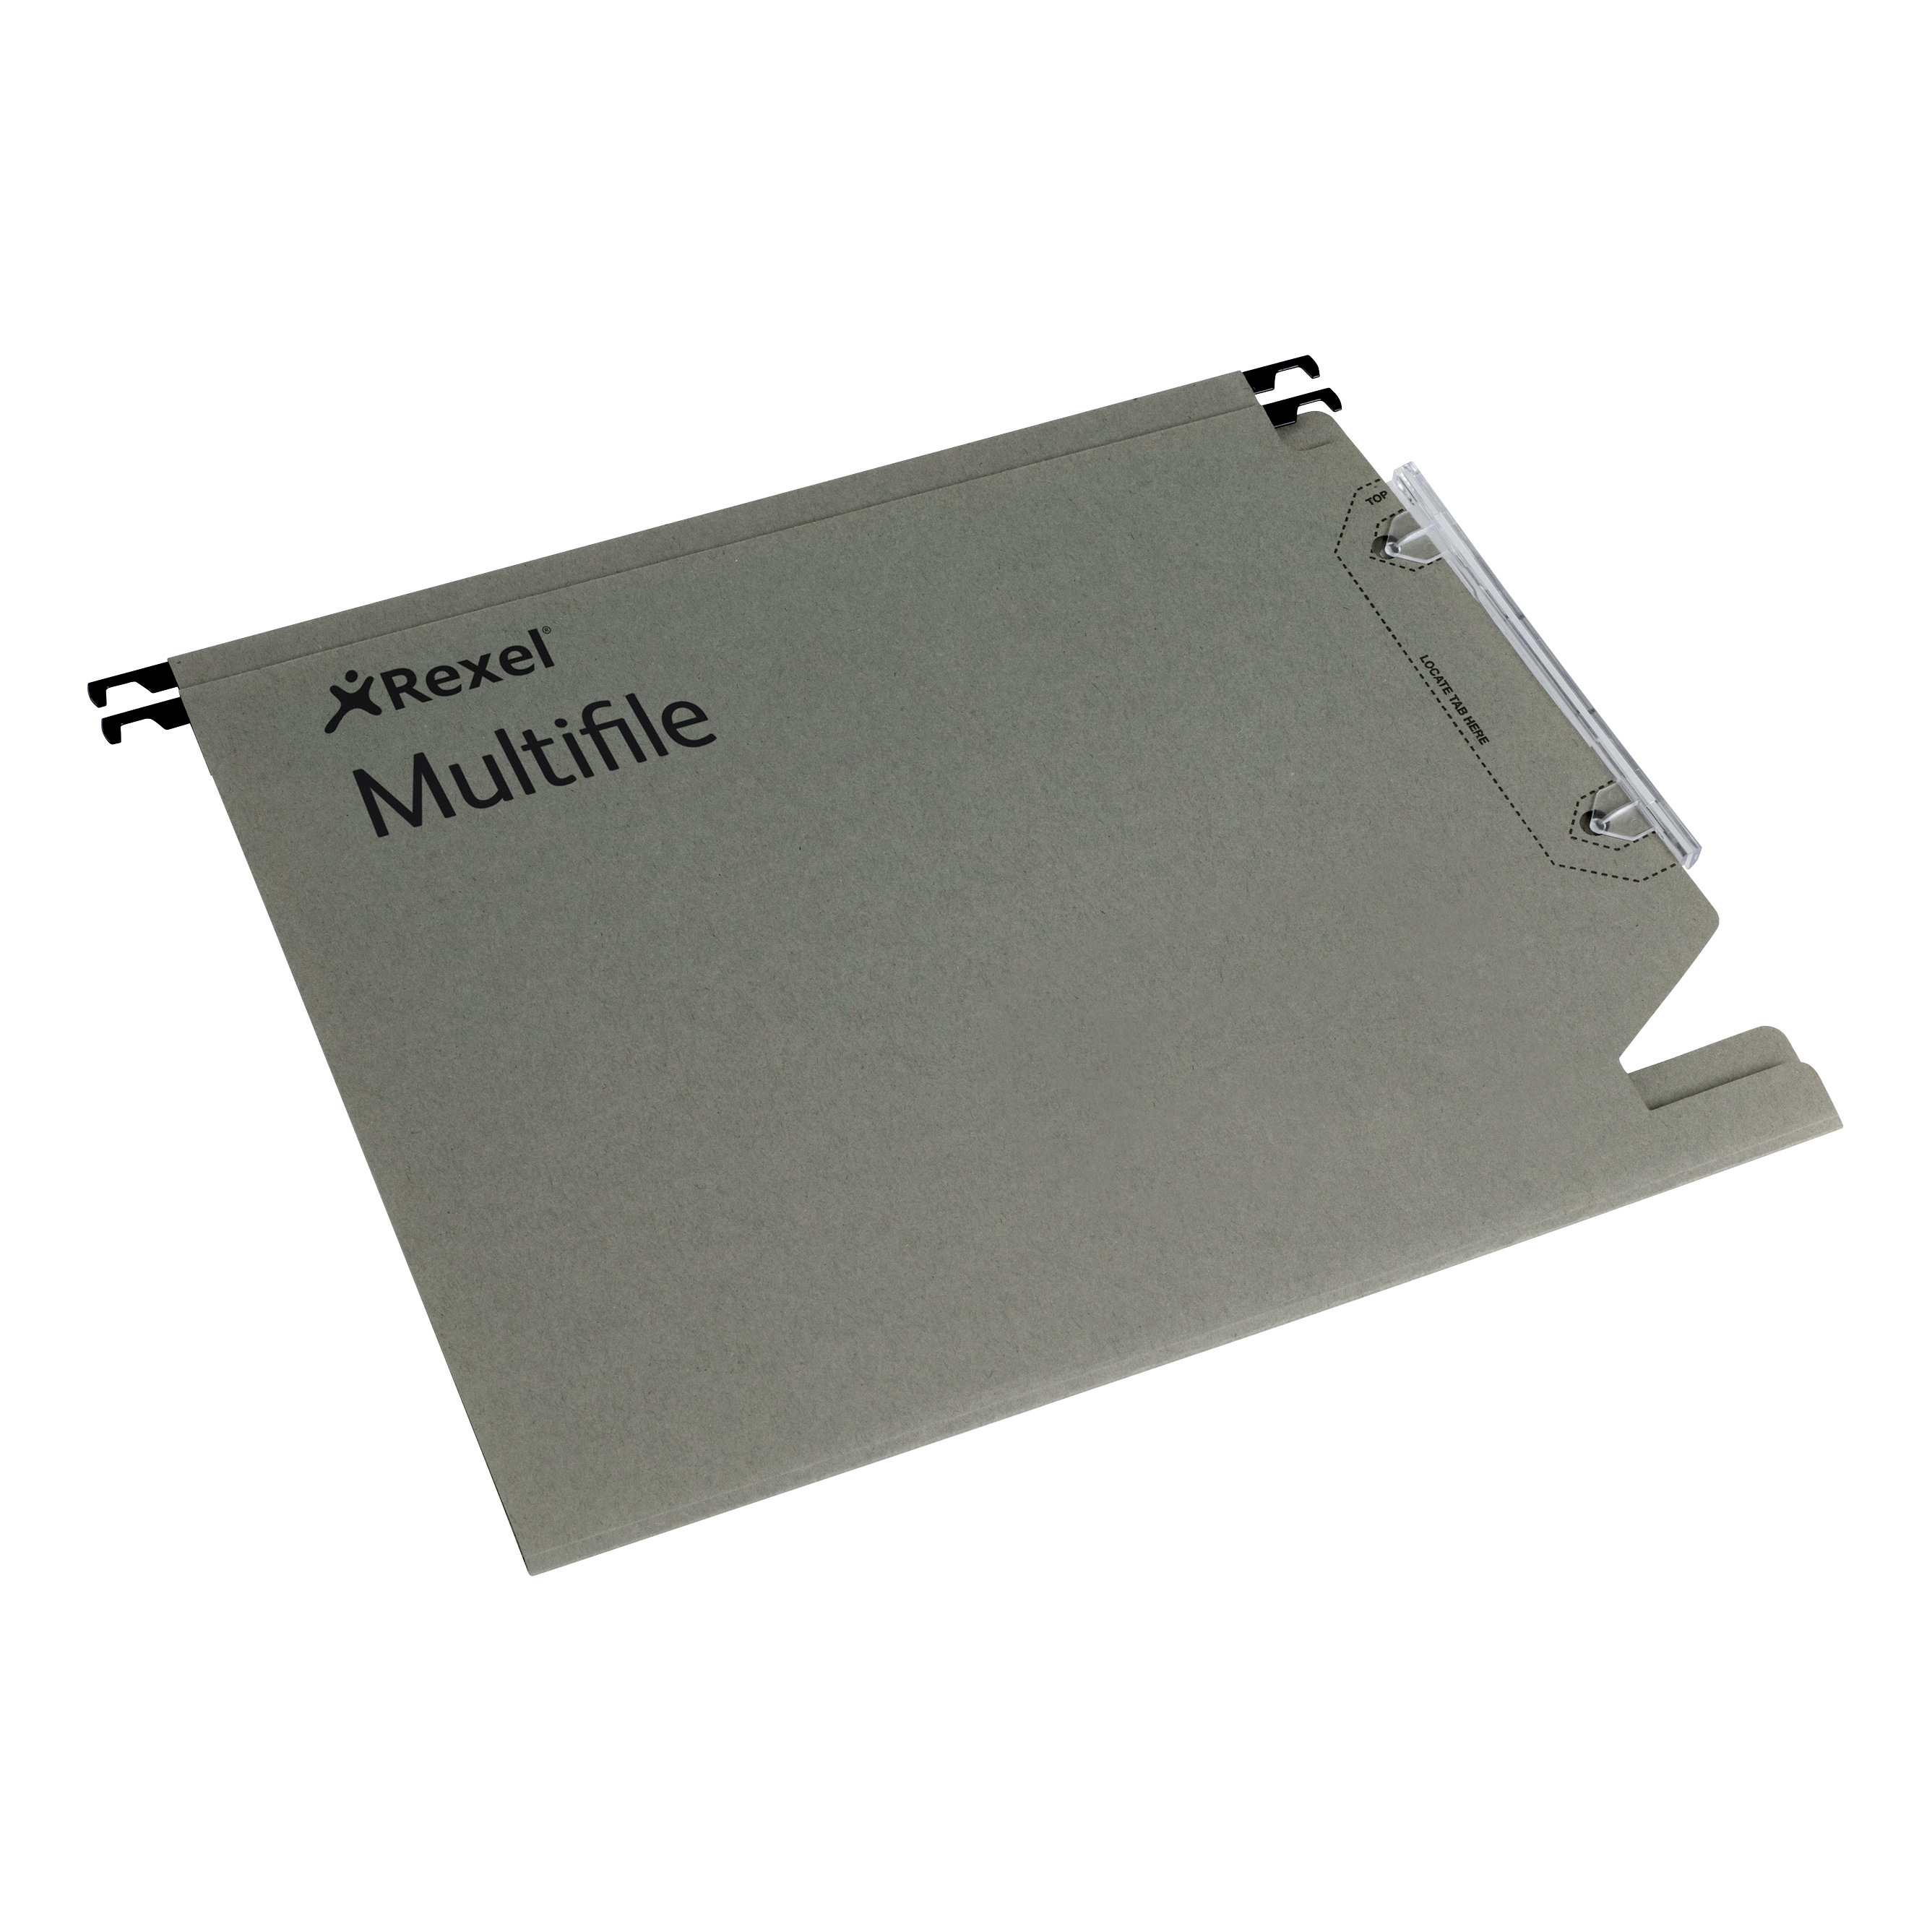 Lateral Files Rexel Multifile Lateral Susp Files Manilla 15mm V-base 330mm Runner 210gsm A4 Green Ref 78080 Pack 50